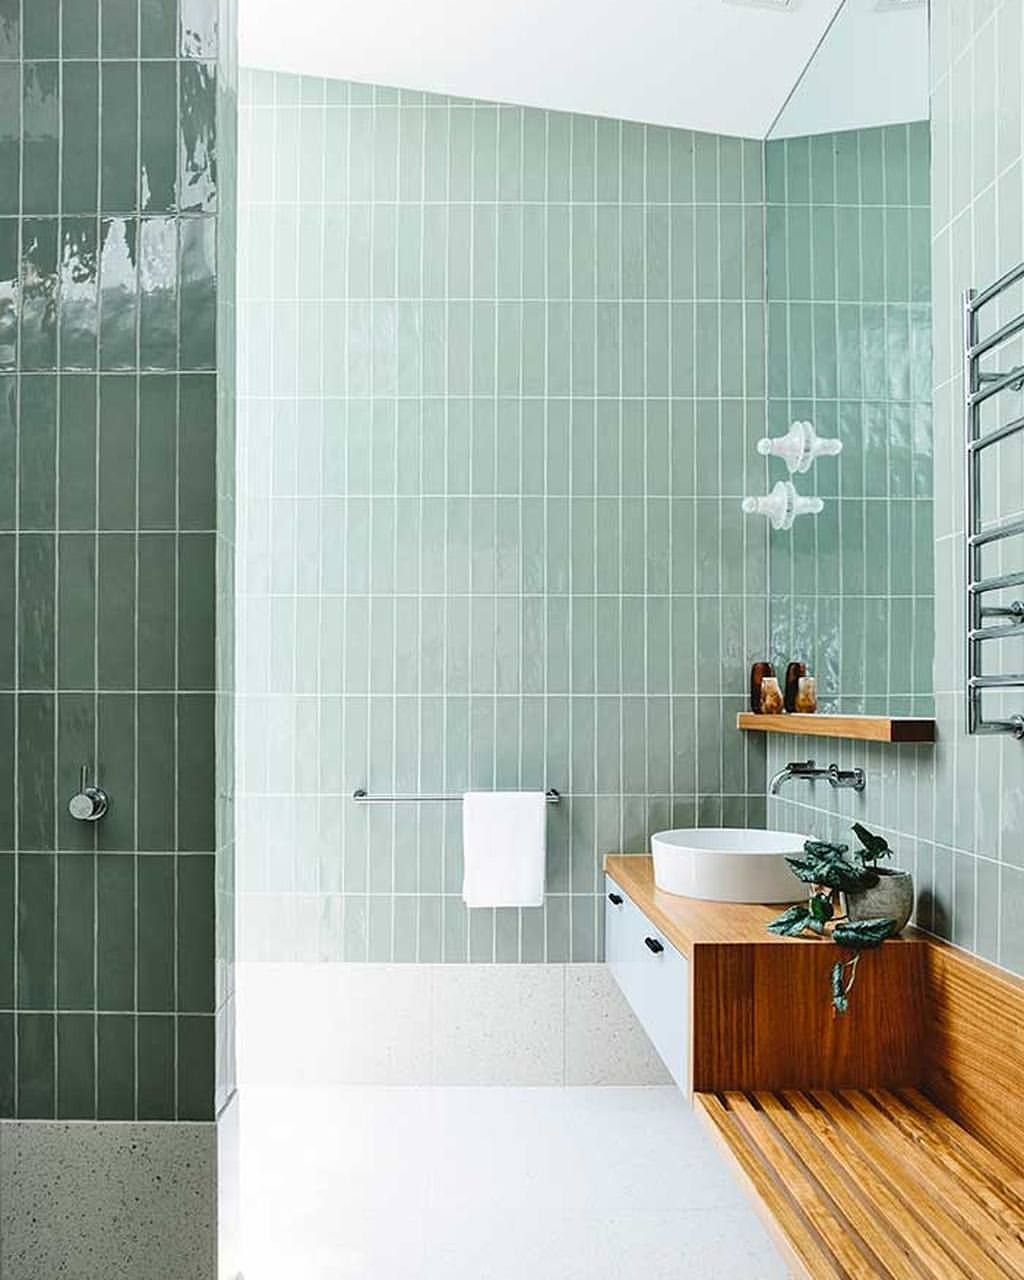 32 likes 2 comments national tiles nationaltilesau on 32 likes 2 comments national tiles nationaltilesau on instagram dailygadgetfo Images